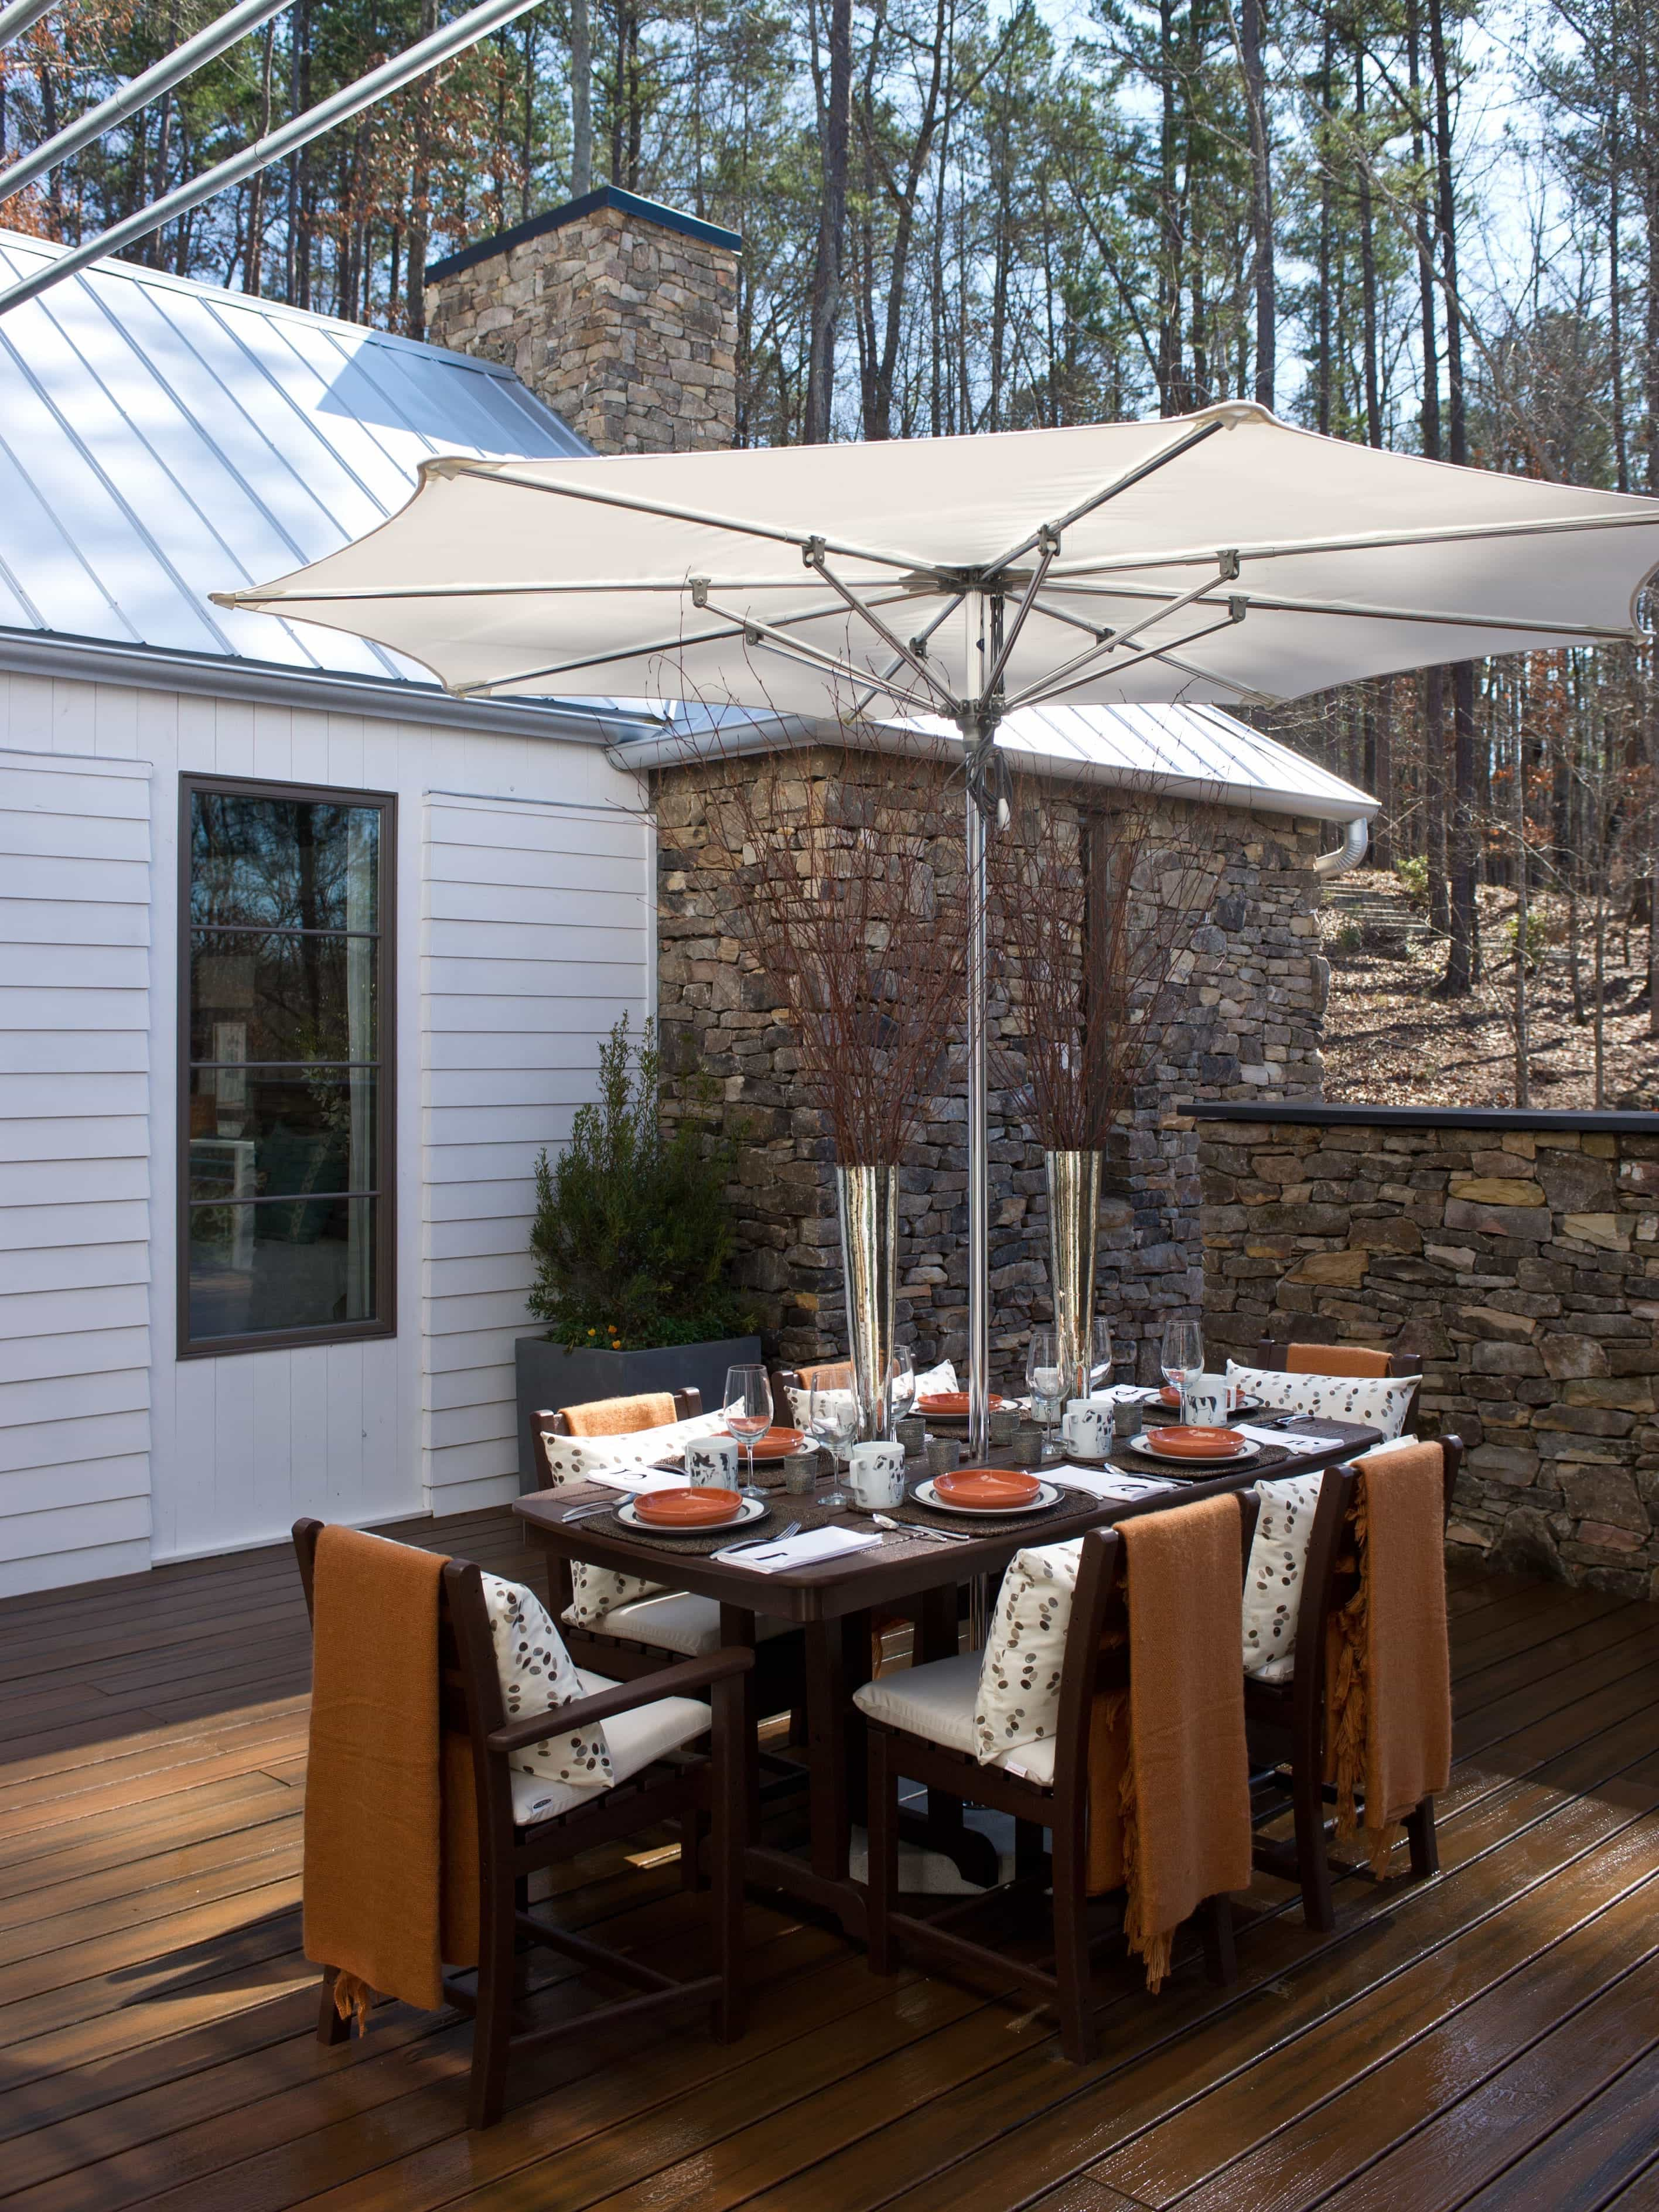 Romantic Courtyard Dining Table With Umbrella (Image 5 of 8)